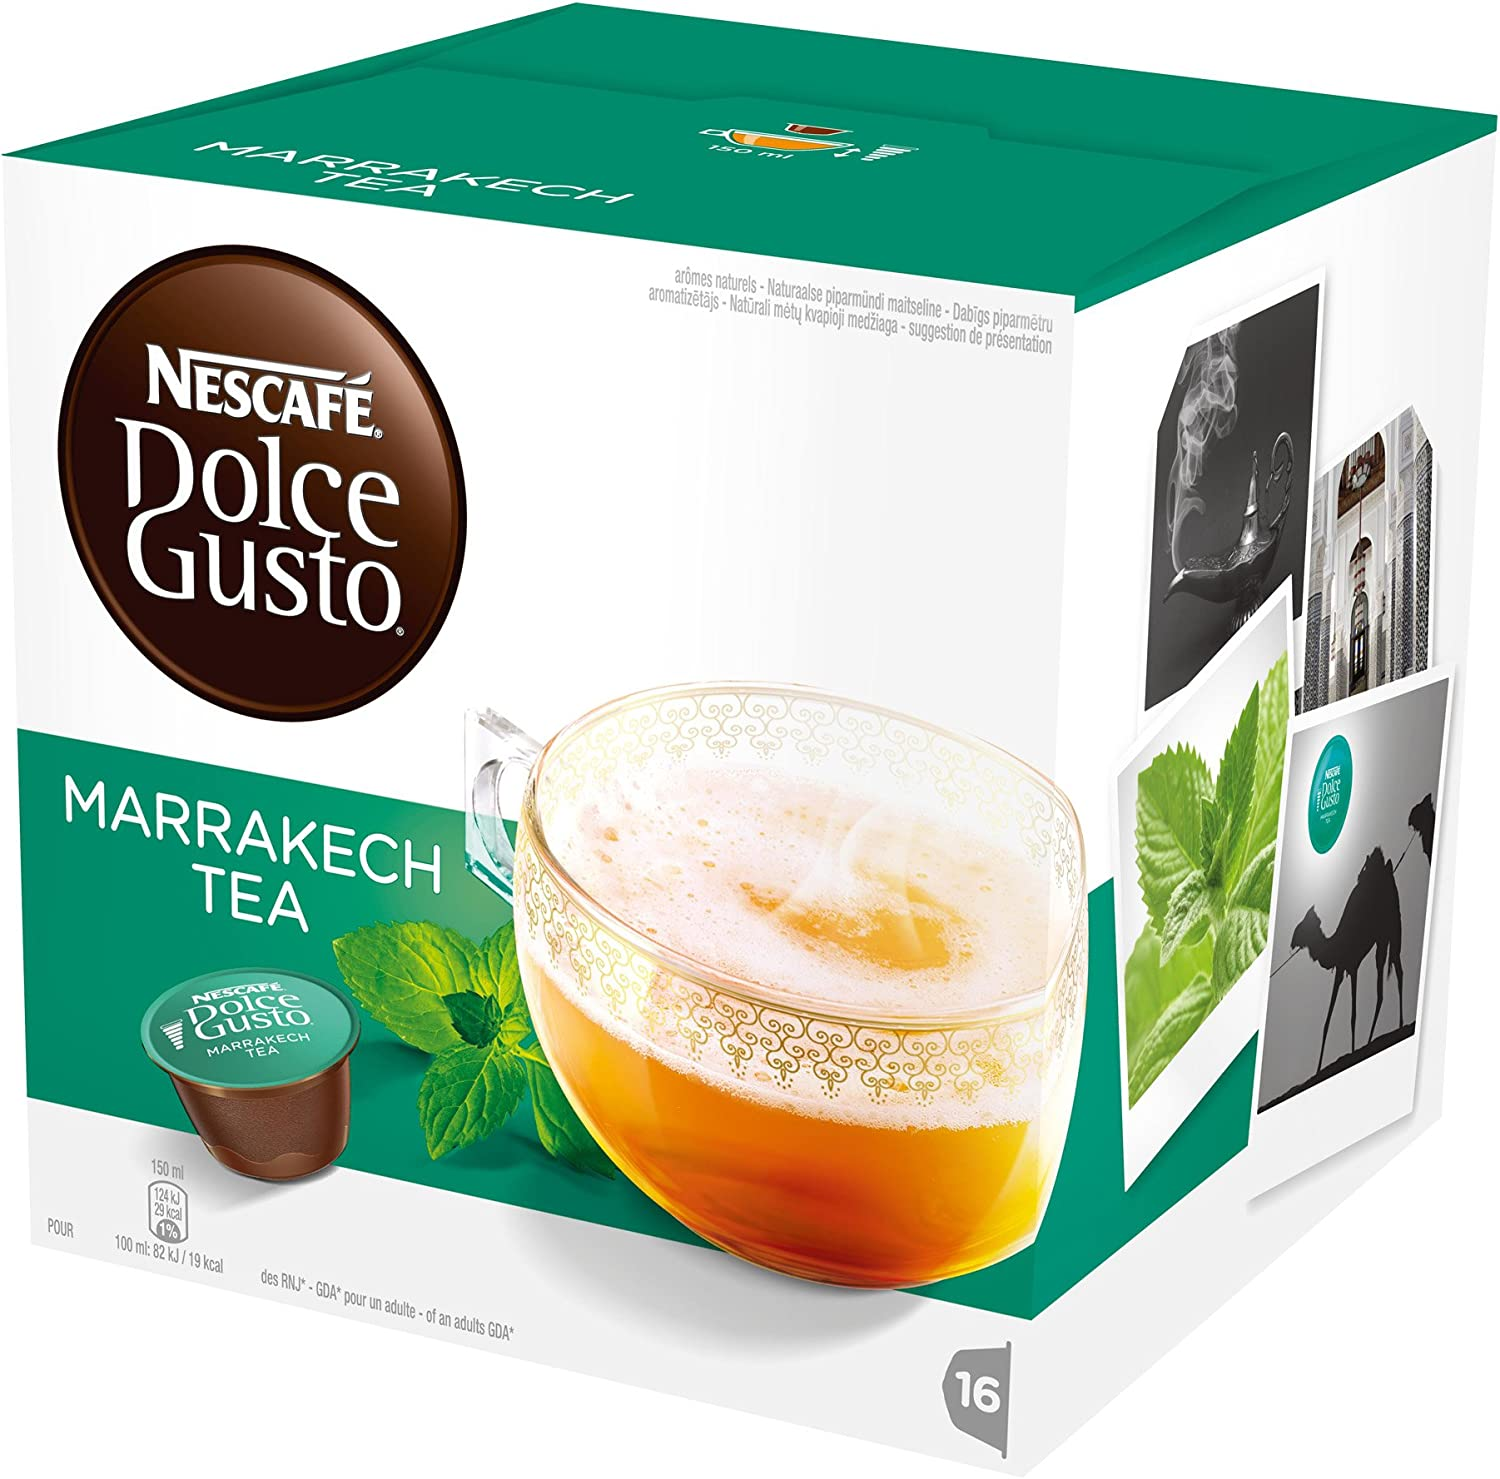 N/a - Nescafe dolce gusto marrakesh style tea (pack of 3) by na ...